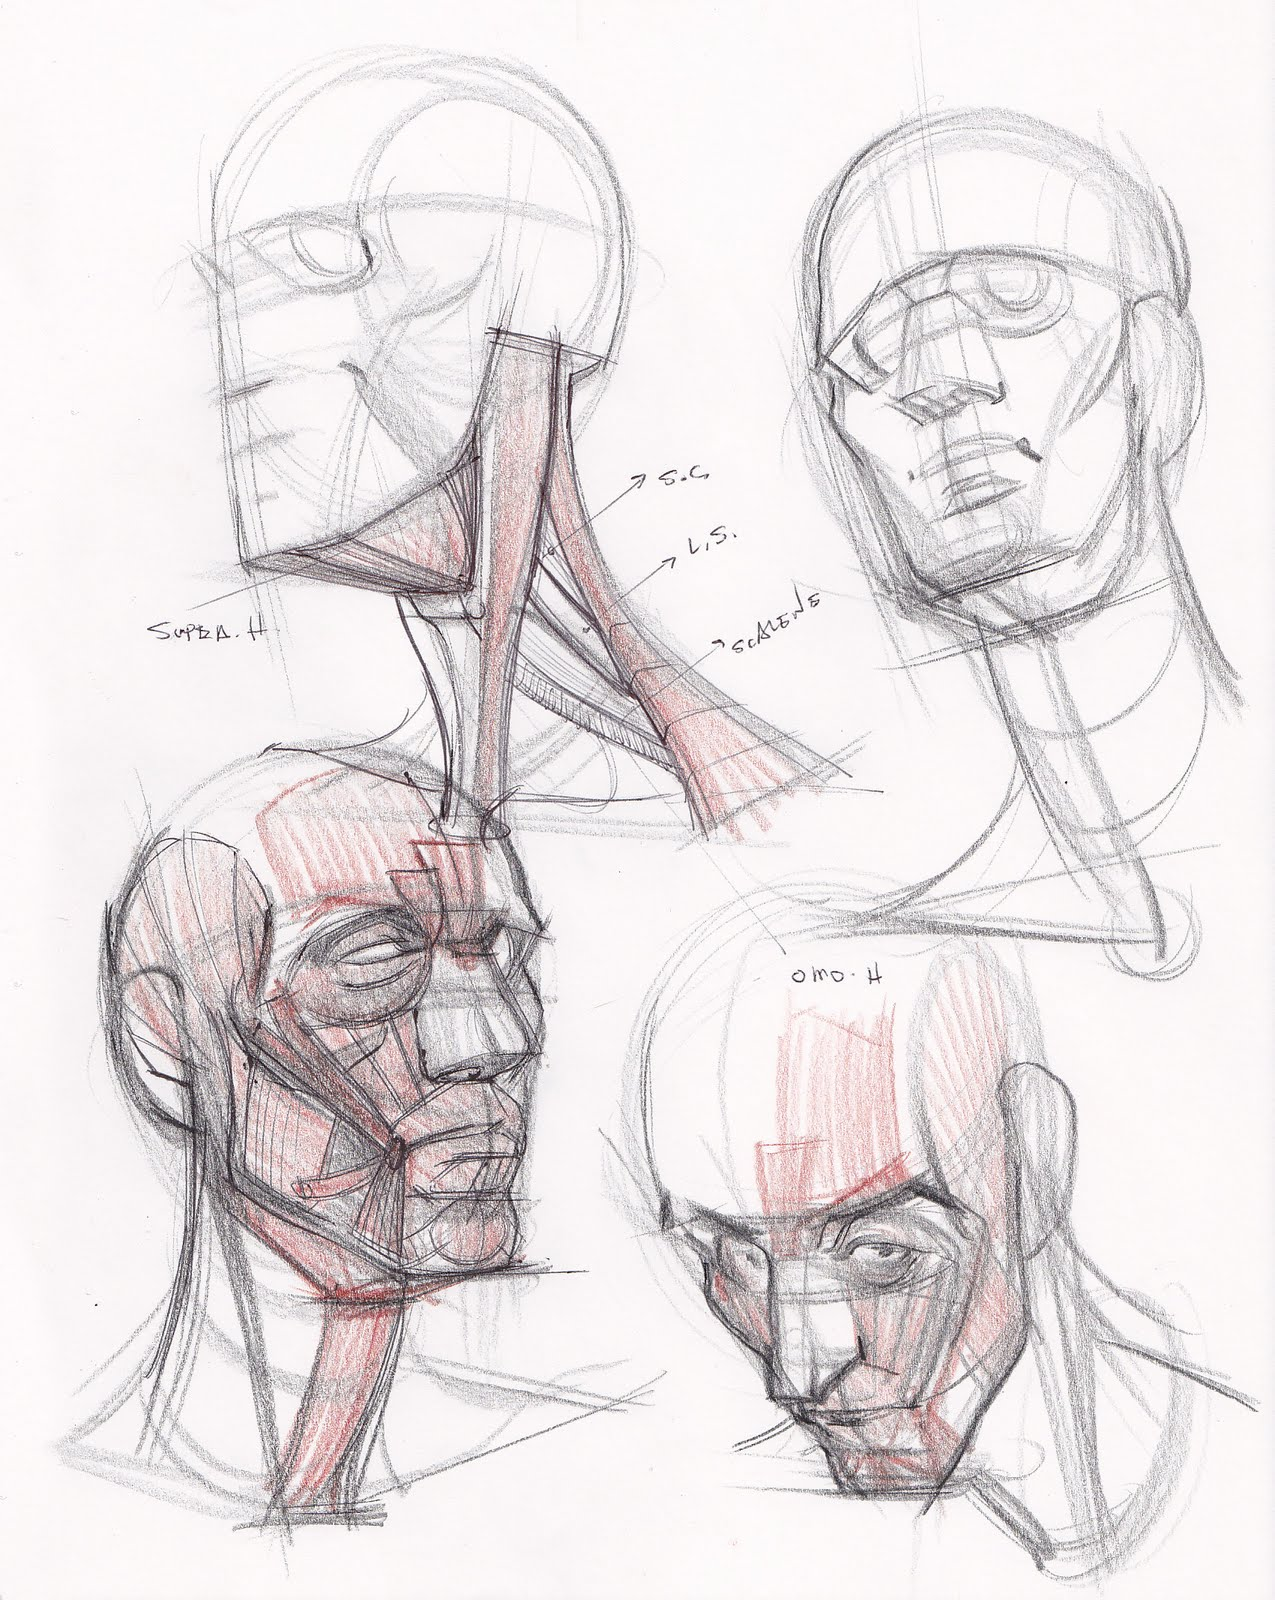 figuredrawing.info news: Head, Neck, and Anatomy